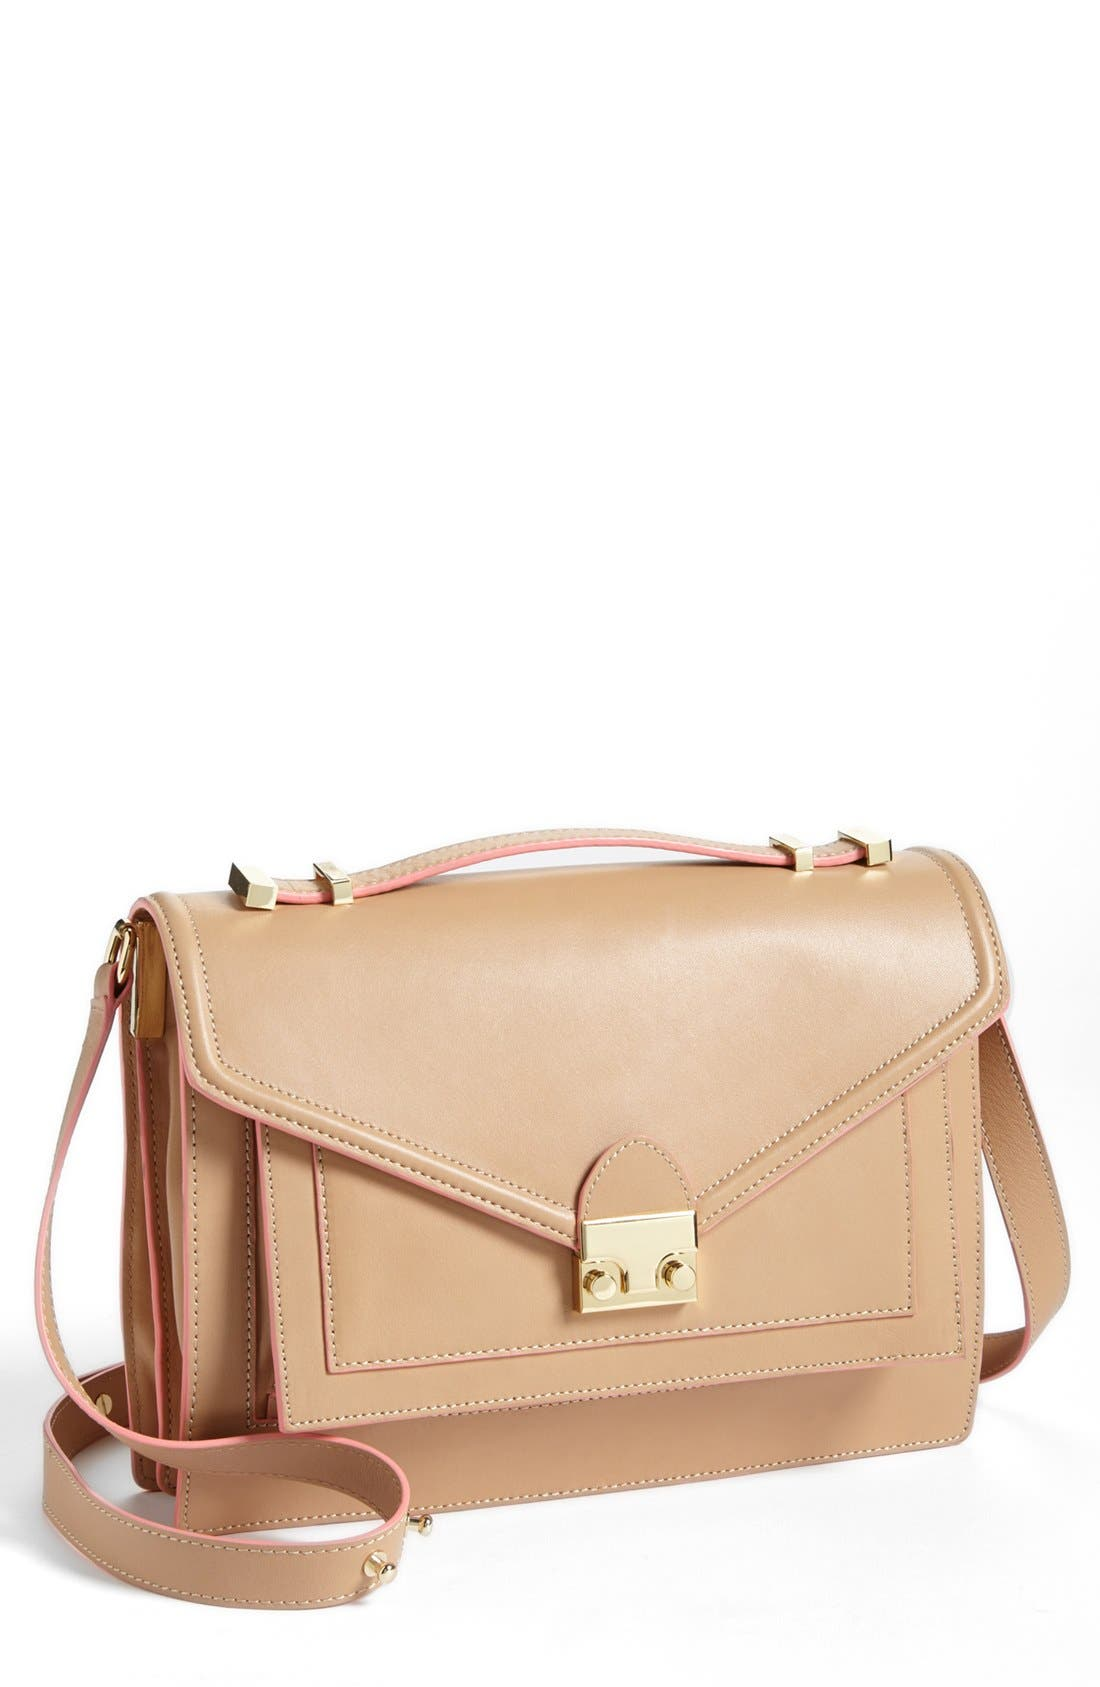 Alternate Image 1 Selected - Loeffler Randall 'Rider' Leather Satchel